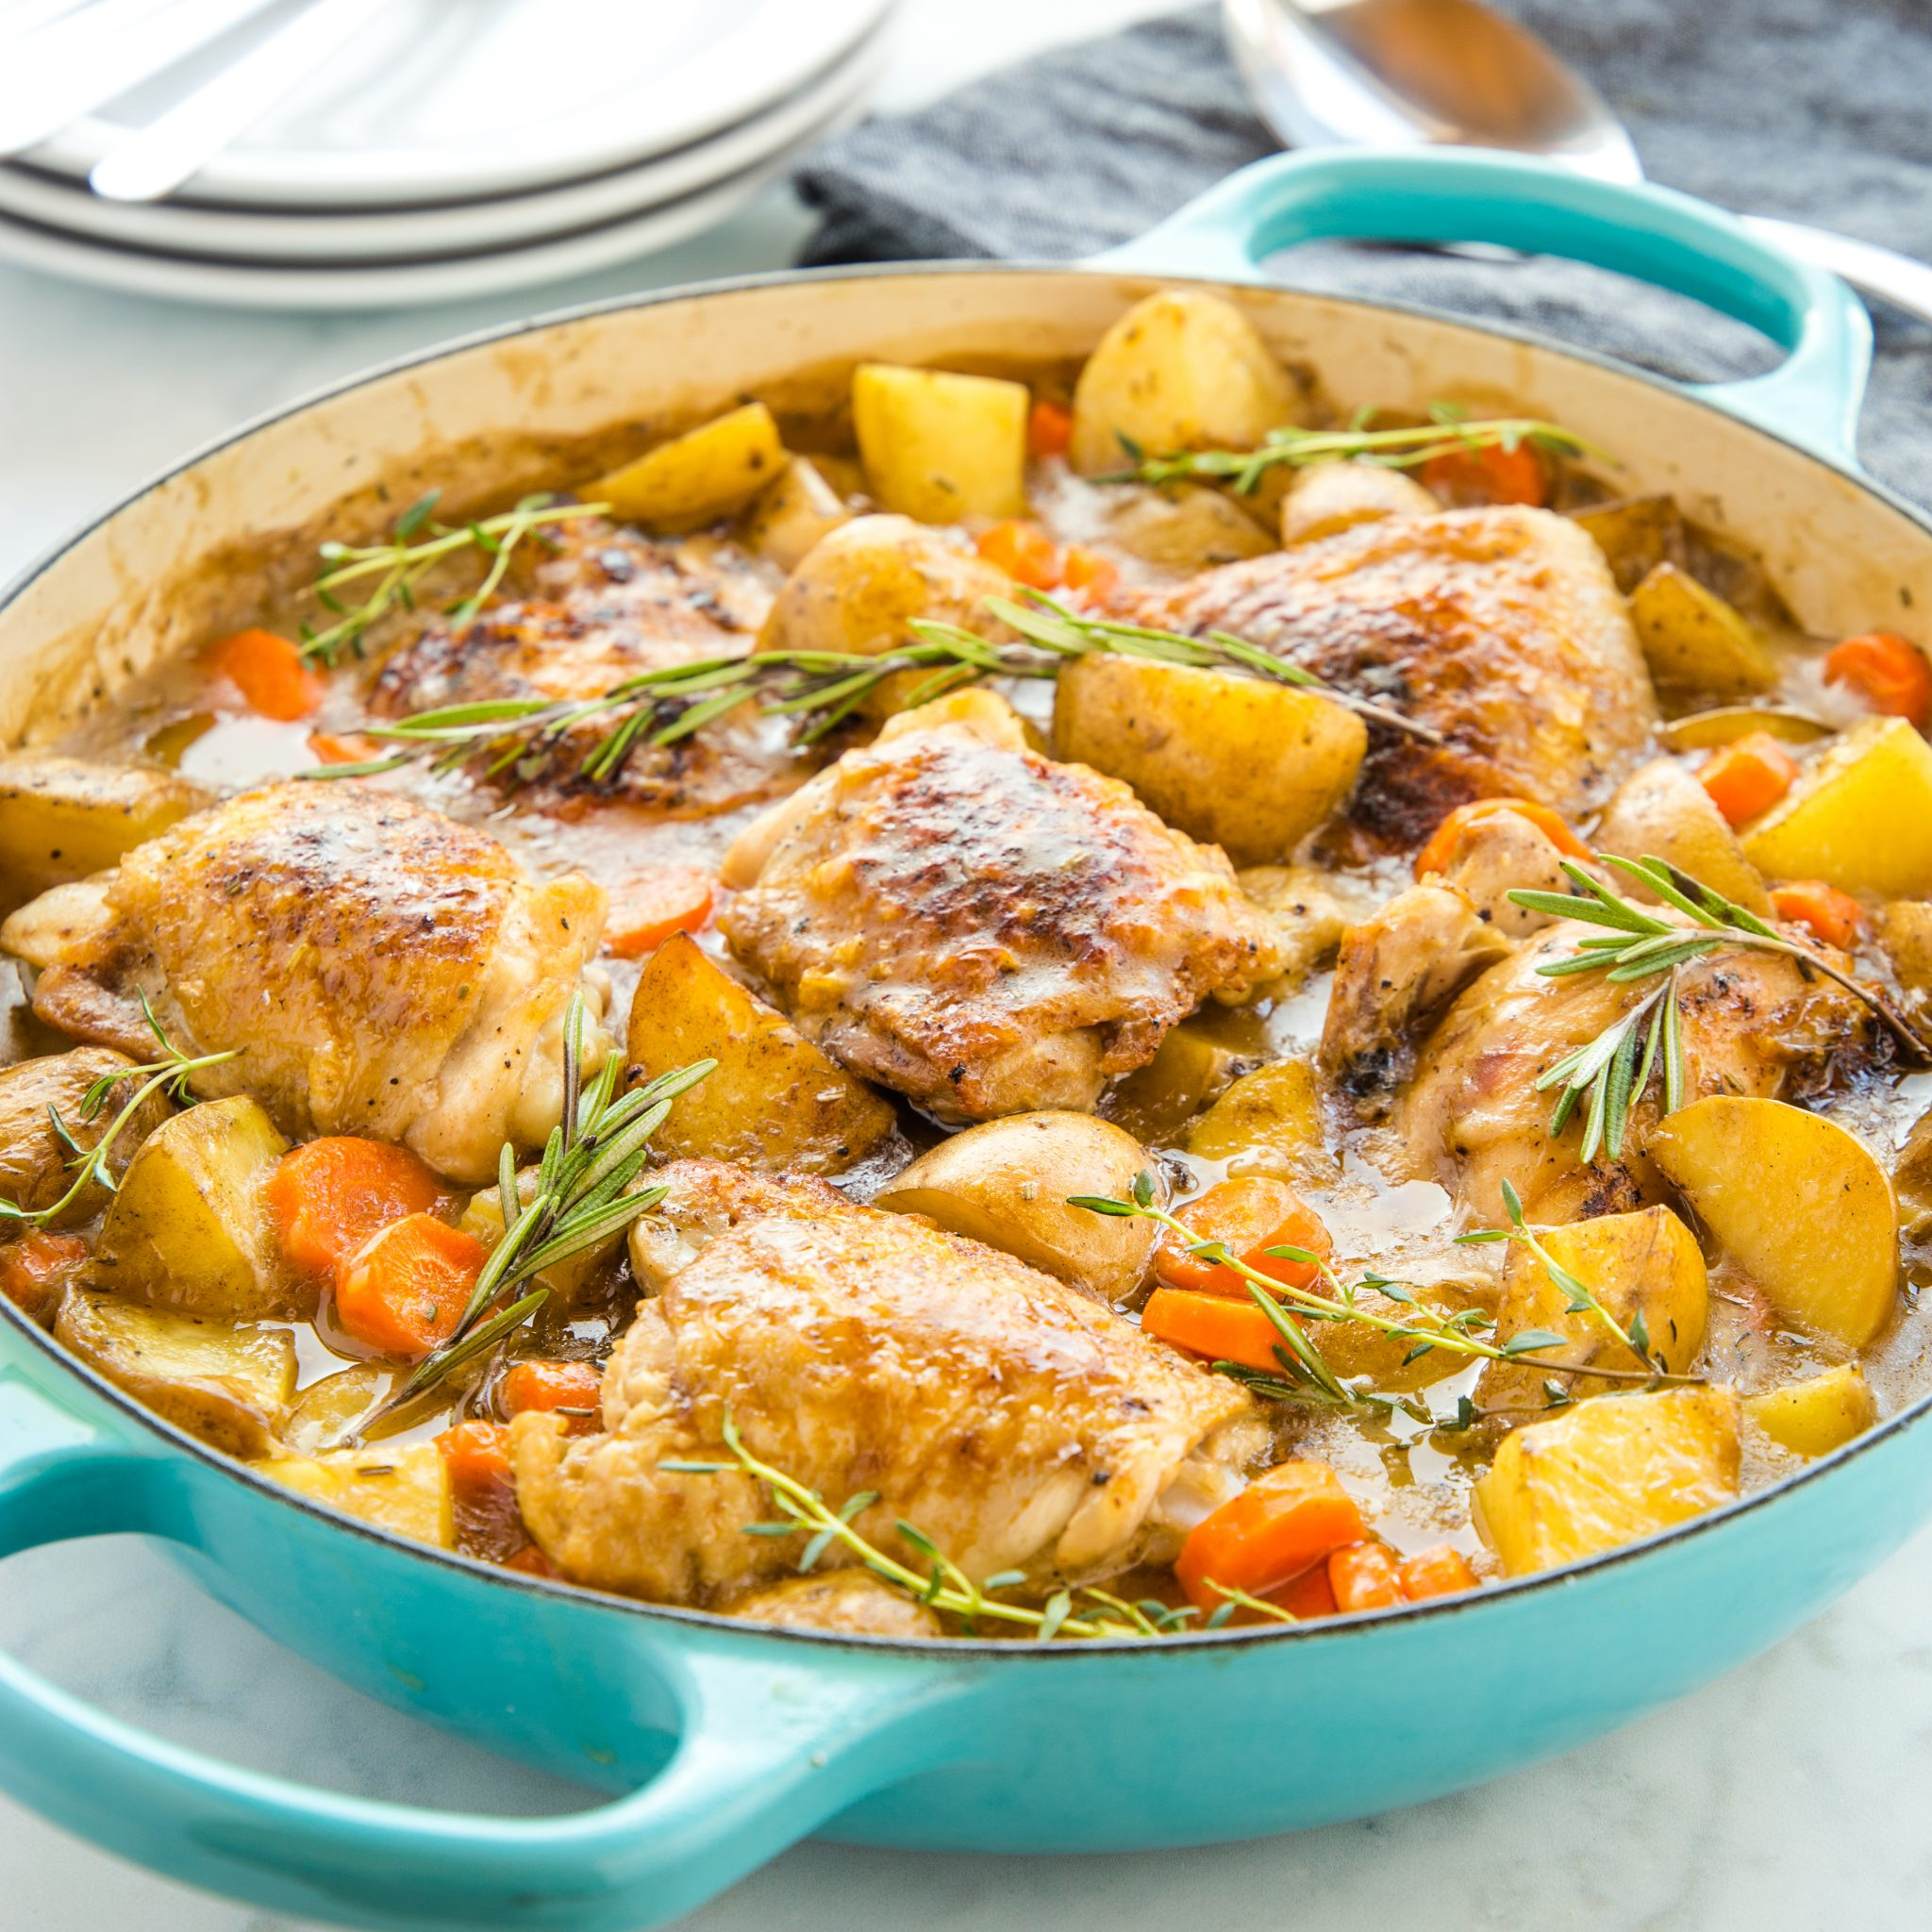 What Is Good To Cook For Dinner: Easy One Pot Roasted Chicken Dinner